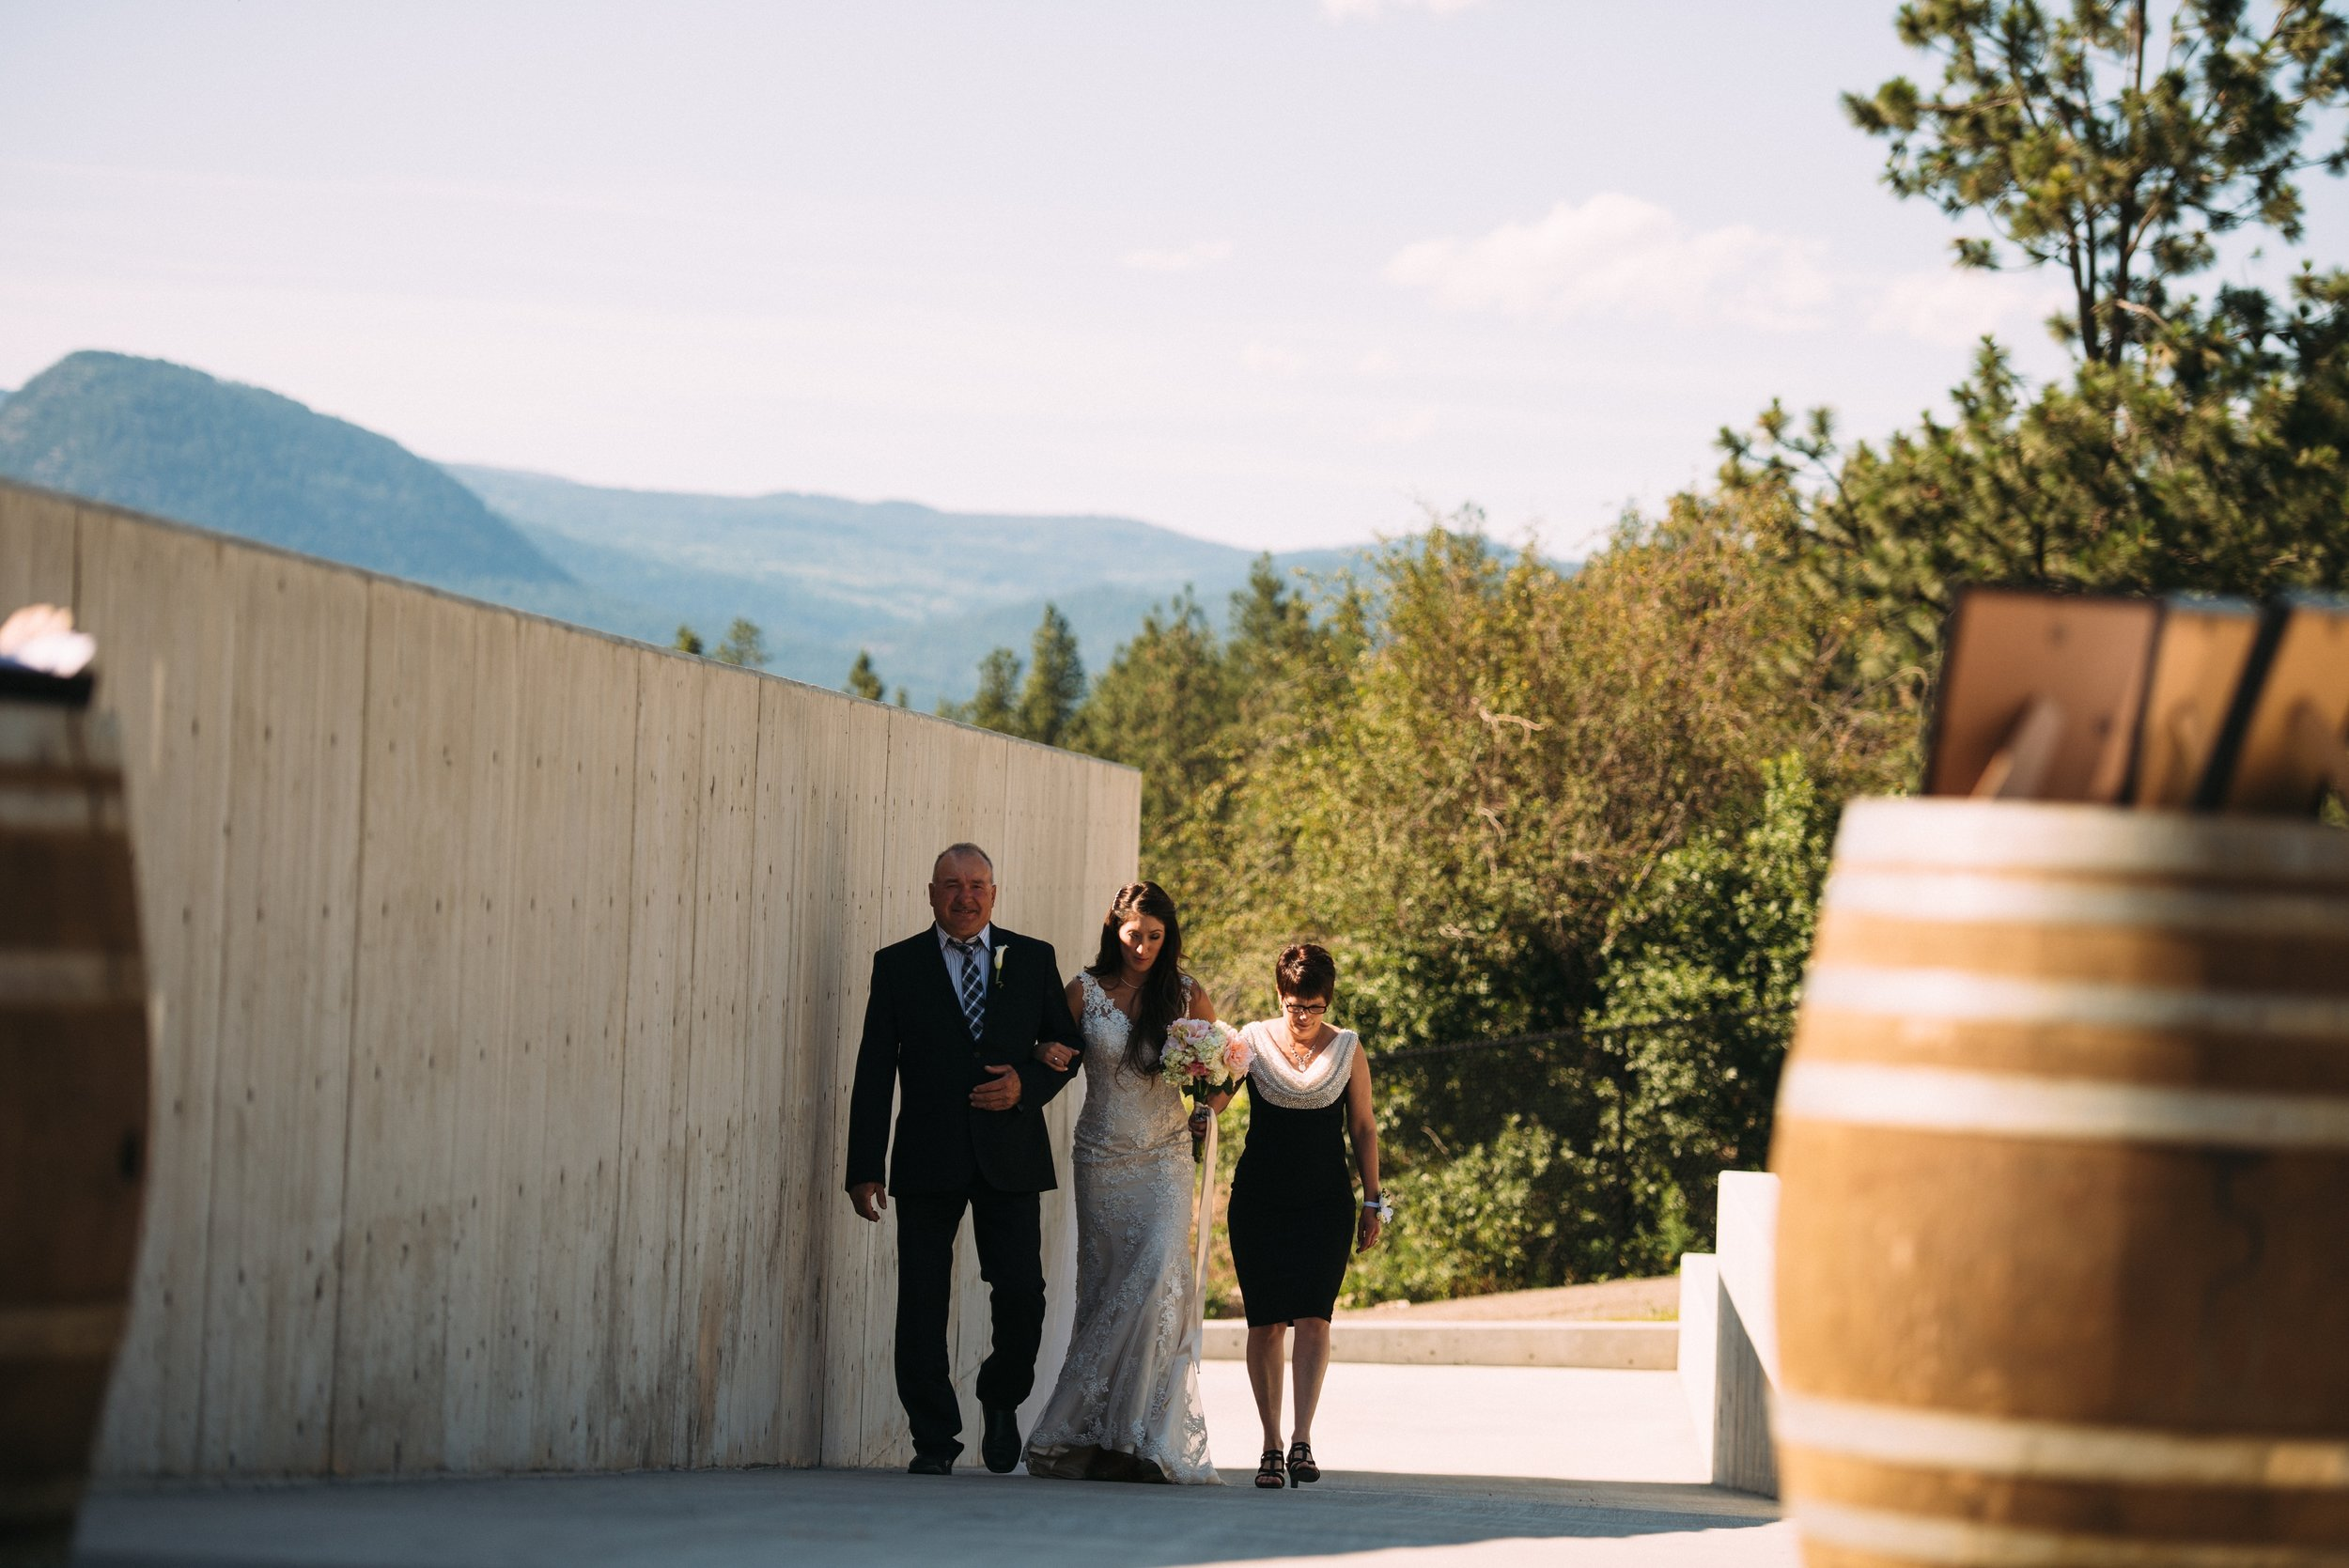 kaihla_tonai_intimate_wedding_elopement_photographer_3899